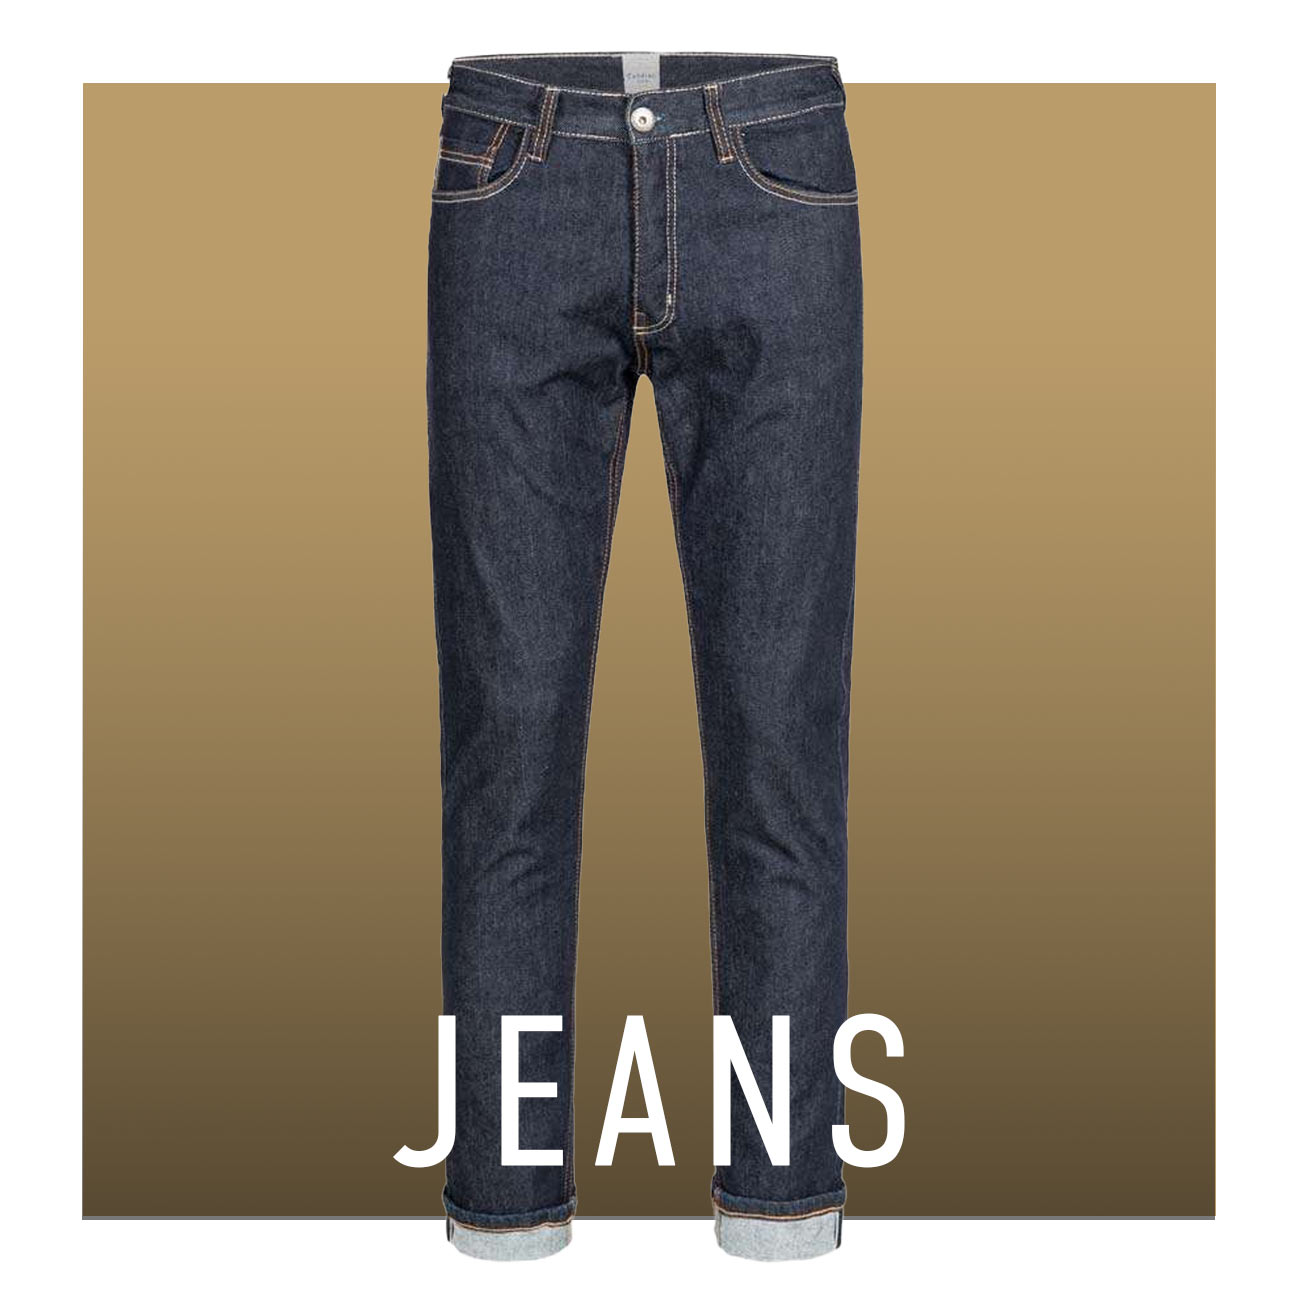 cafe racer motorcycle trousers and kevlar jeans